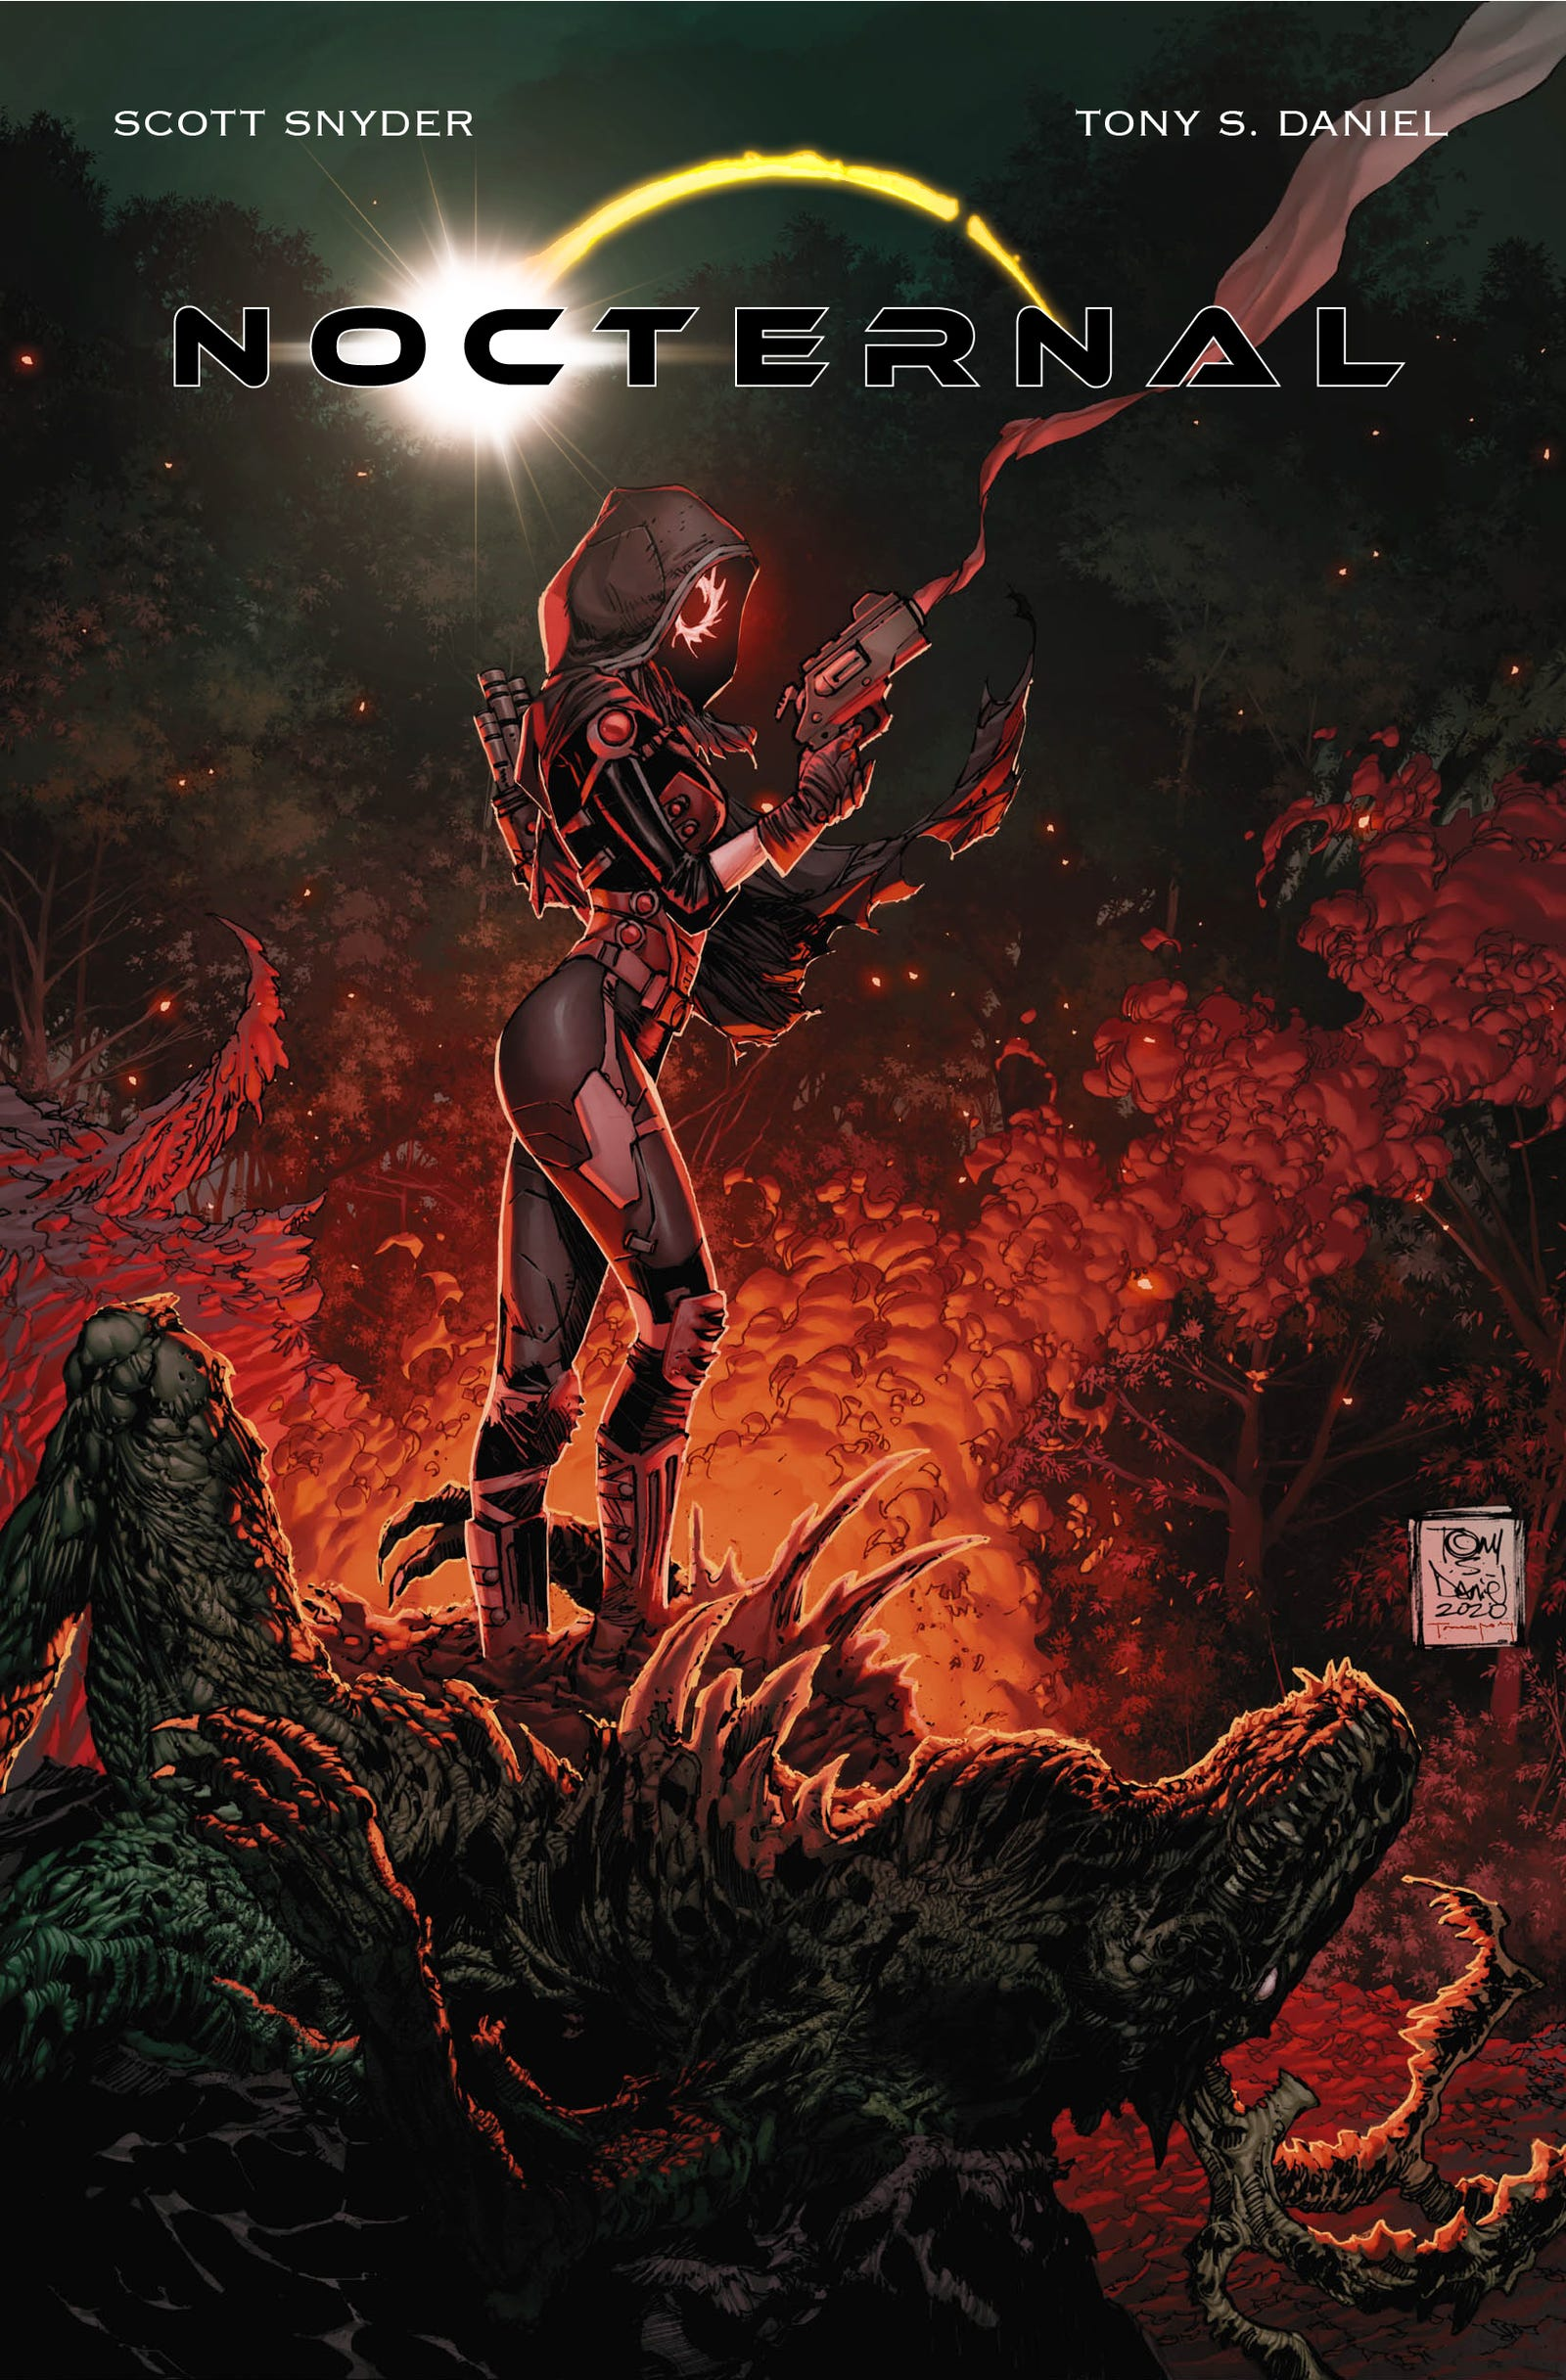 The full cover—pre-name change—of what will now be Nocterra #1...